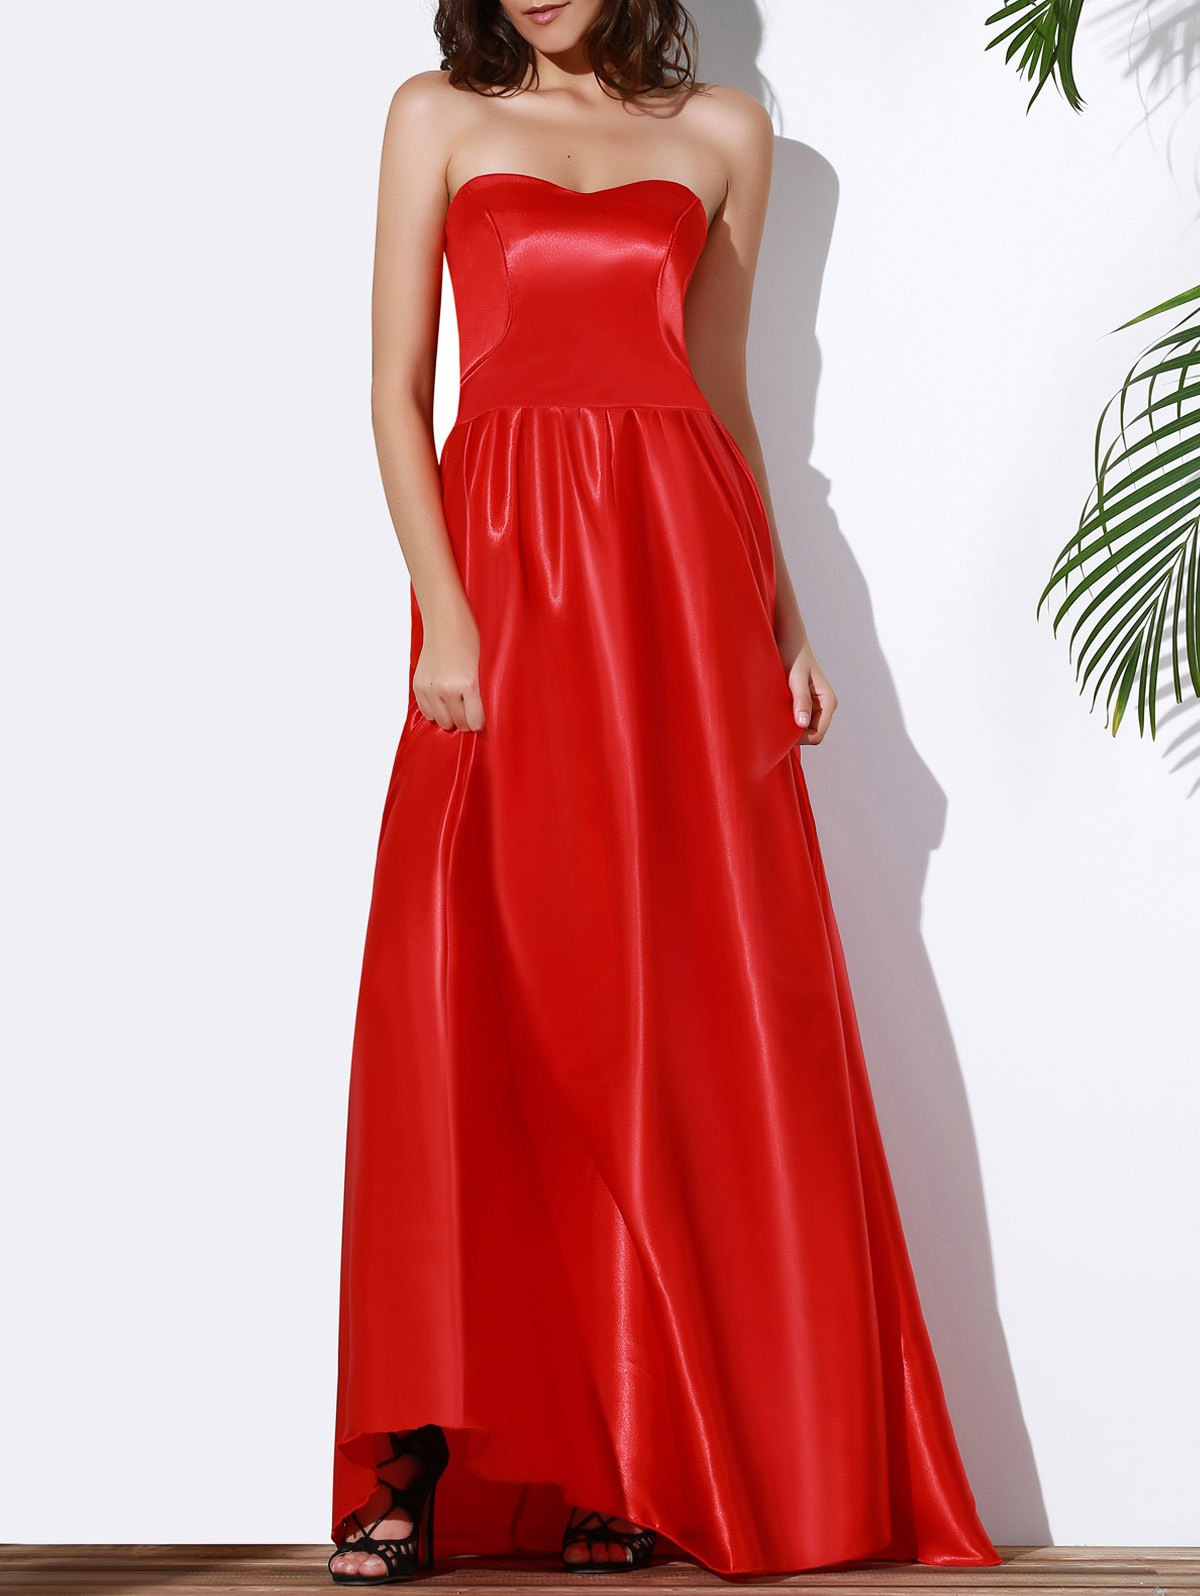 2018 Fashion Strapless Red Maxi Dress For Women In Red S ...